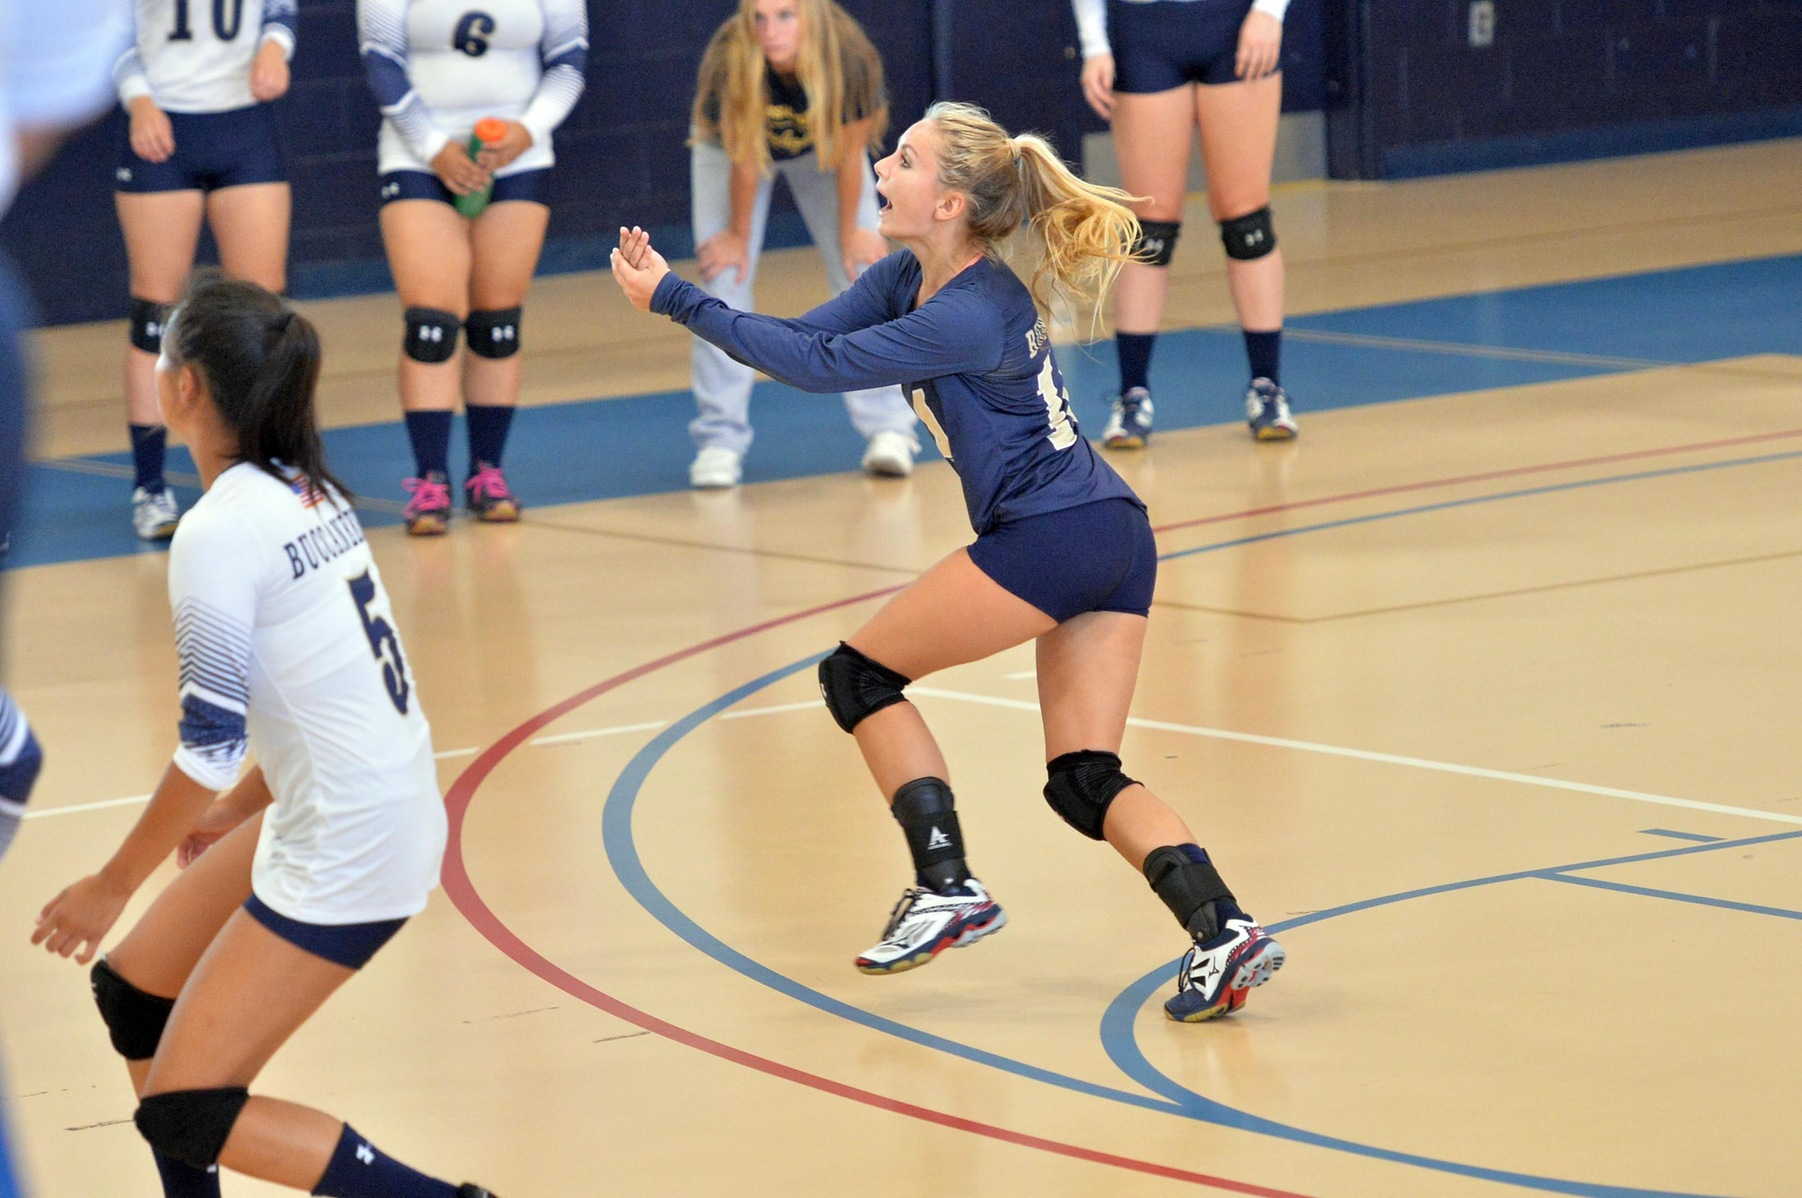 Ruggeri Makes Maritime History with 1,000 Digs